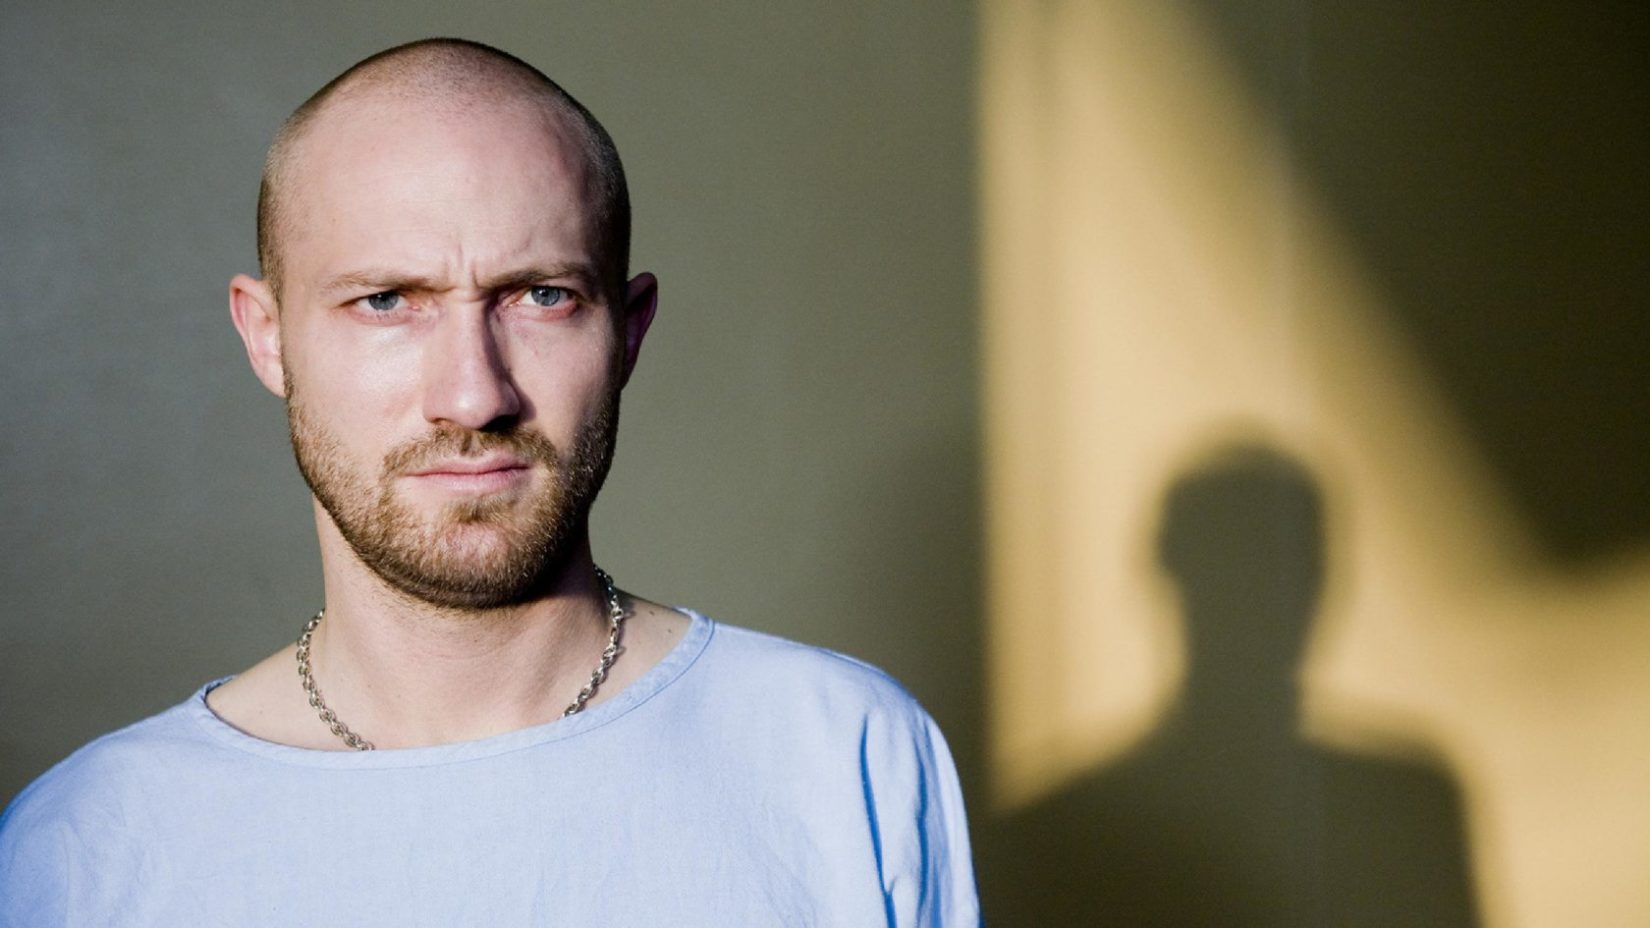 Paul Kalkbrenner - Parts of Life - Transbordeur